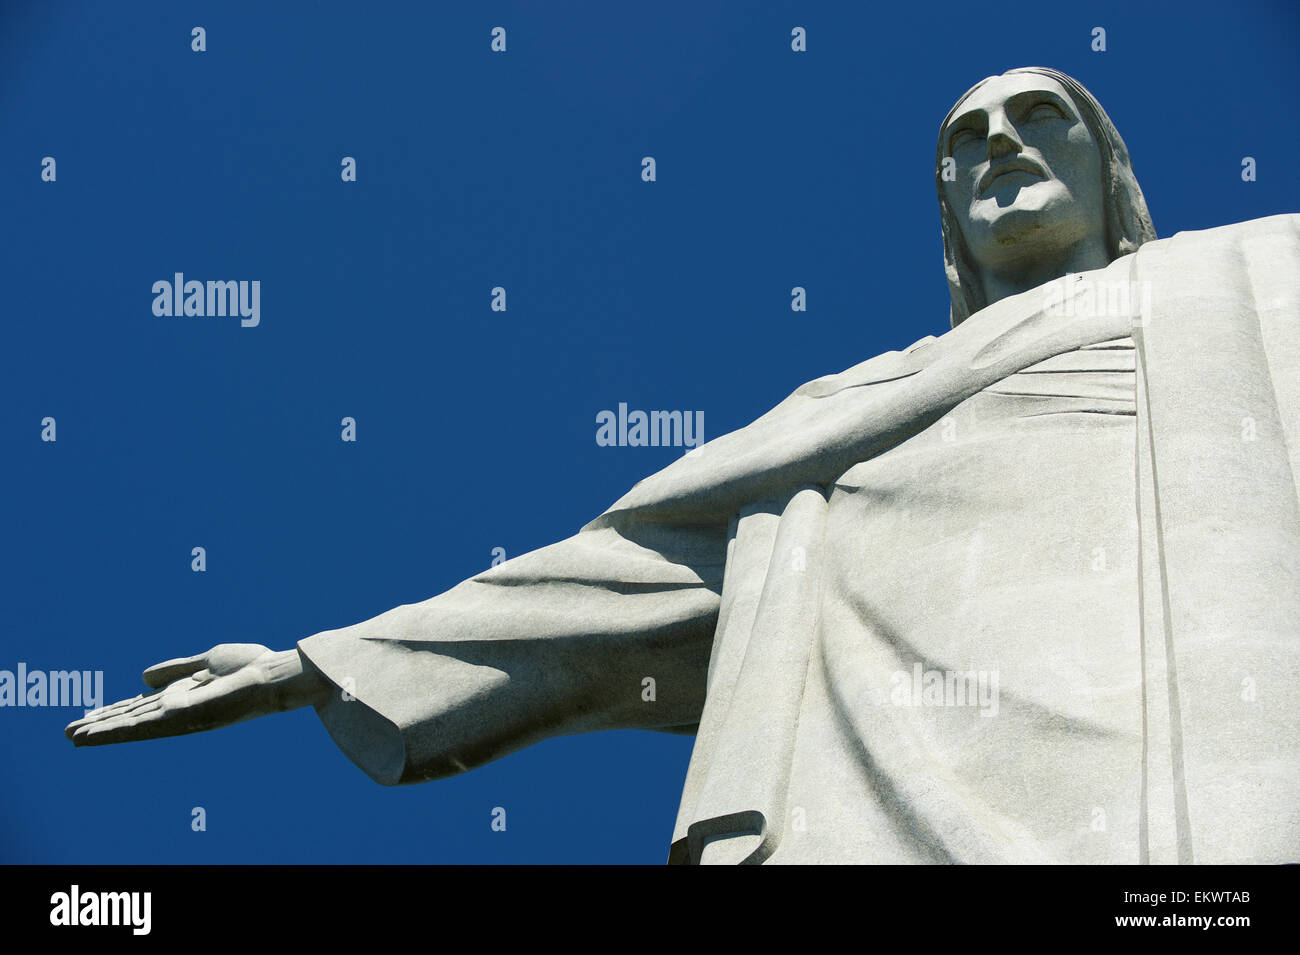 RIO DE JANEIRO, BRAZIL - MARCH 05, 2015: Close-up of the statue of Christ the Redeemer at Corcovado against bright - Stock Image